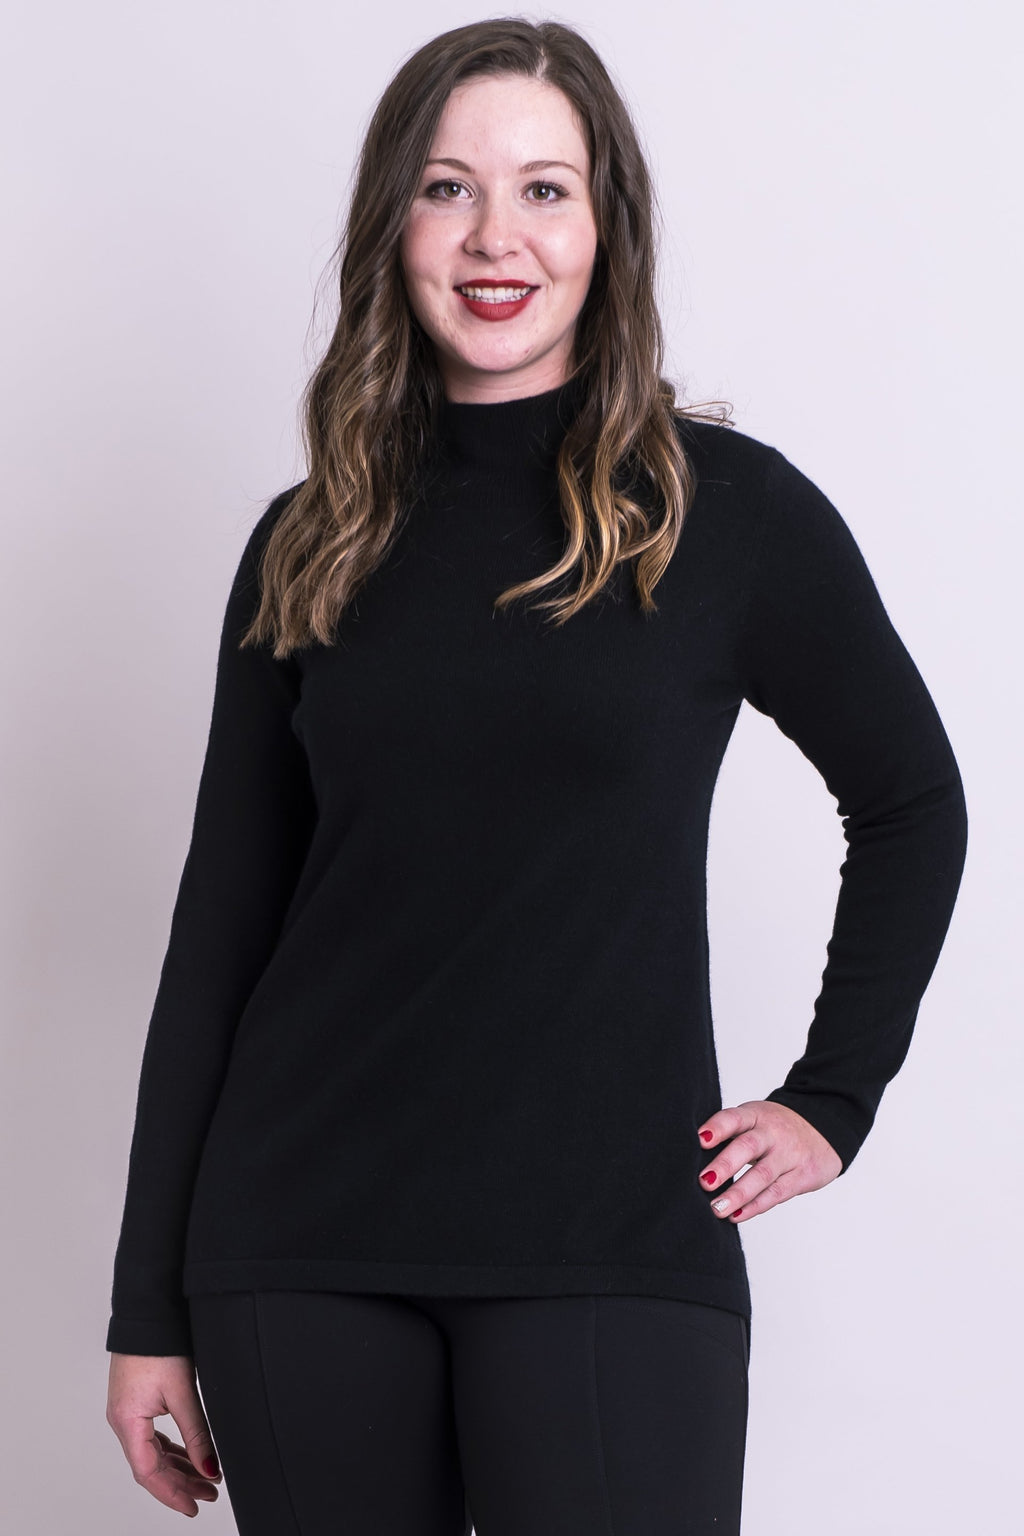 Simone Sweater, Onyx, Cashmere - Blue Sky Clothing Co